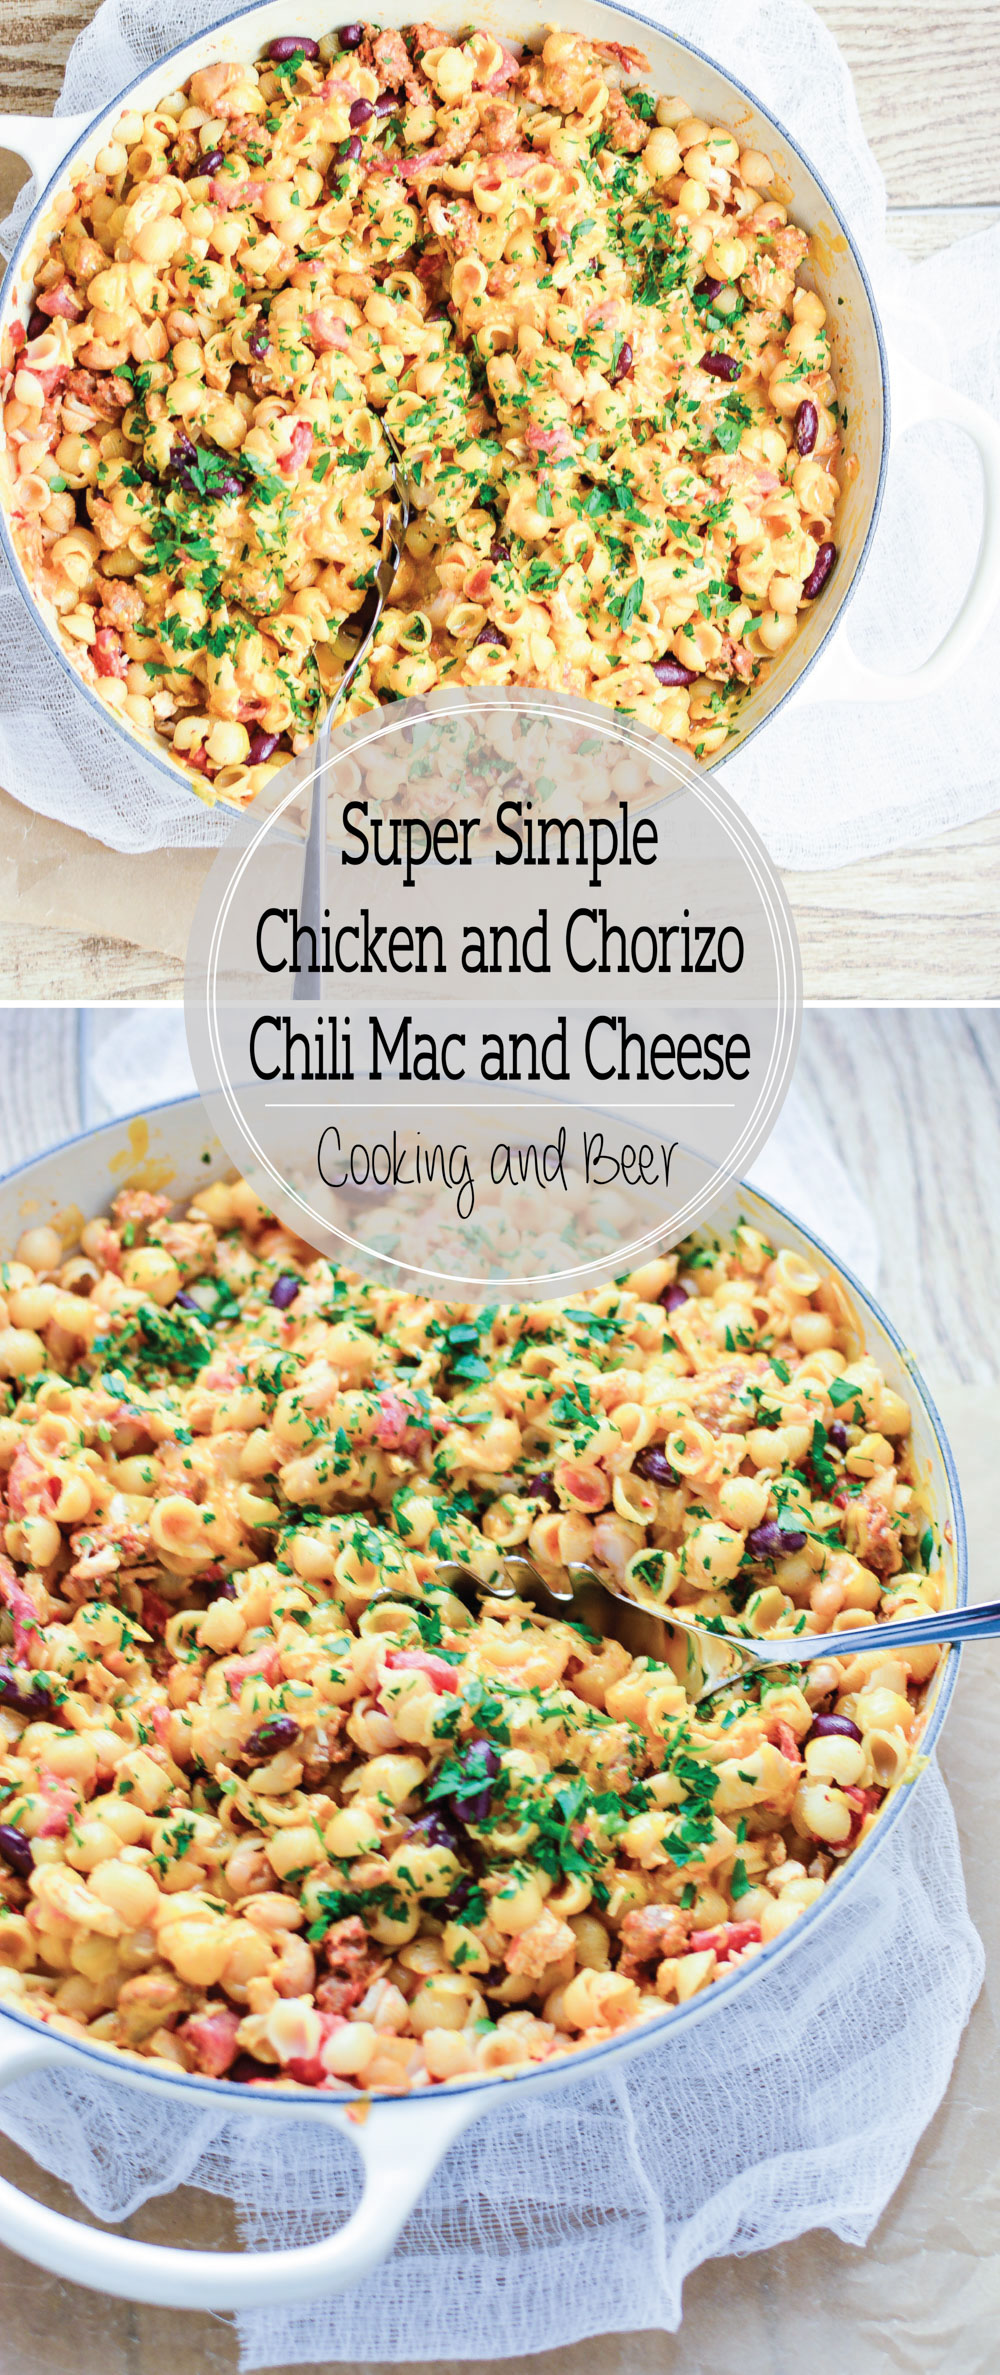 Super Simple Chicken and Chorizo Chili Mac and Cheese is a family-friendly weeknight meal using pantry staples!